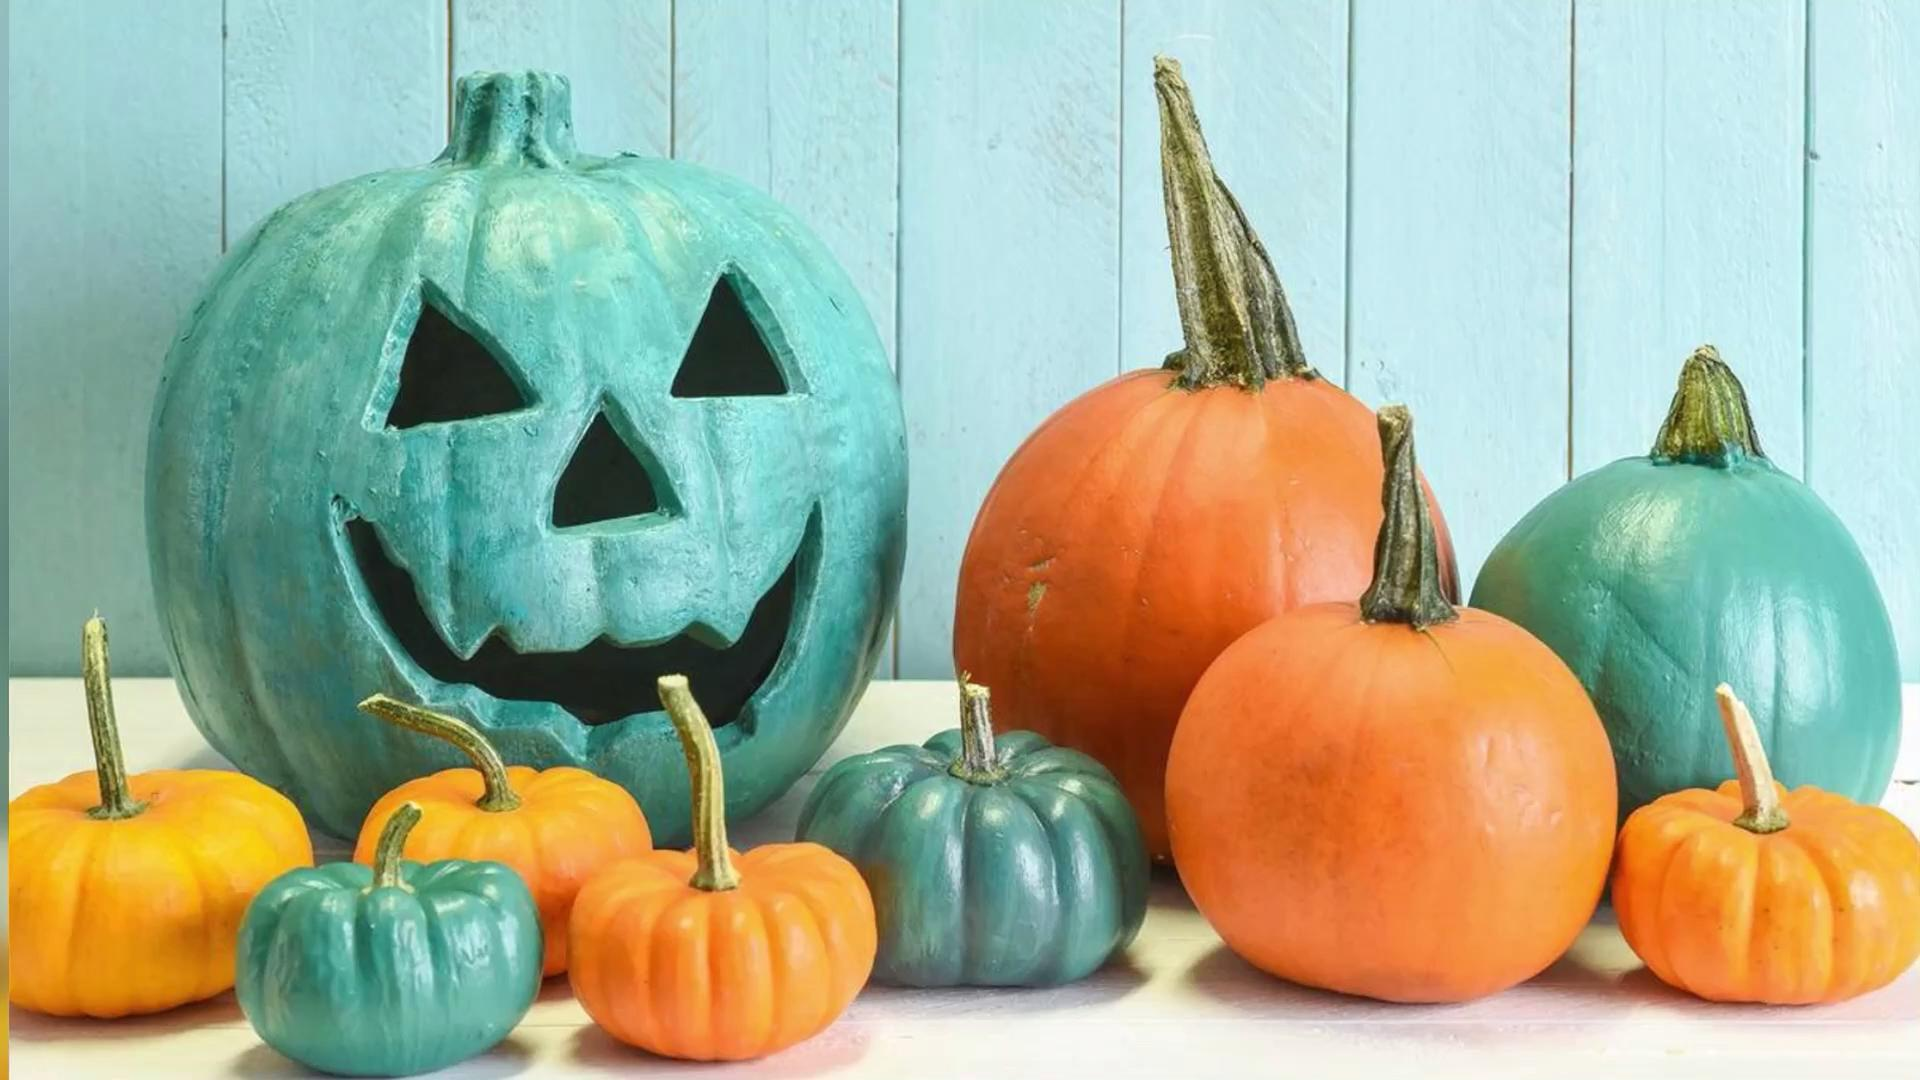 1920x1080 Teal Pumpkin Project Promotes Treats for Kids with Food ...